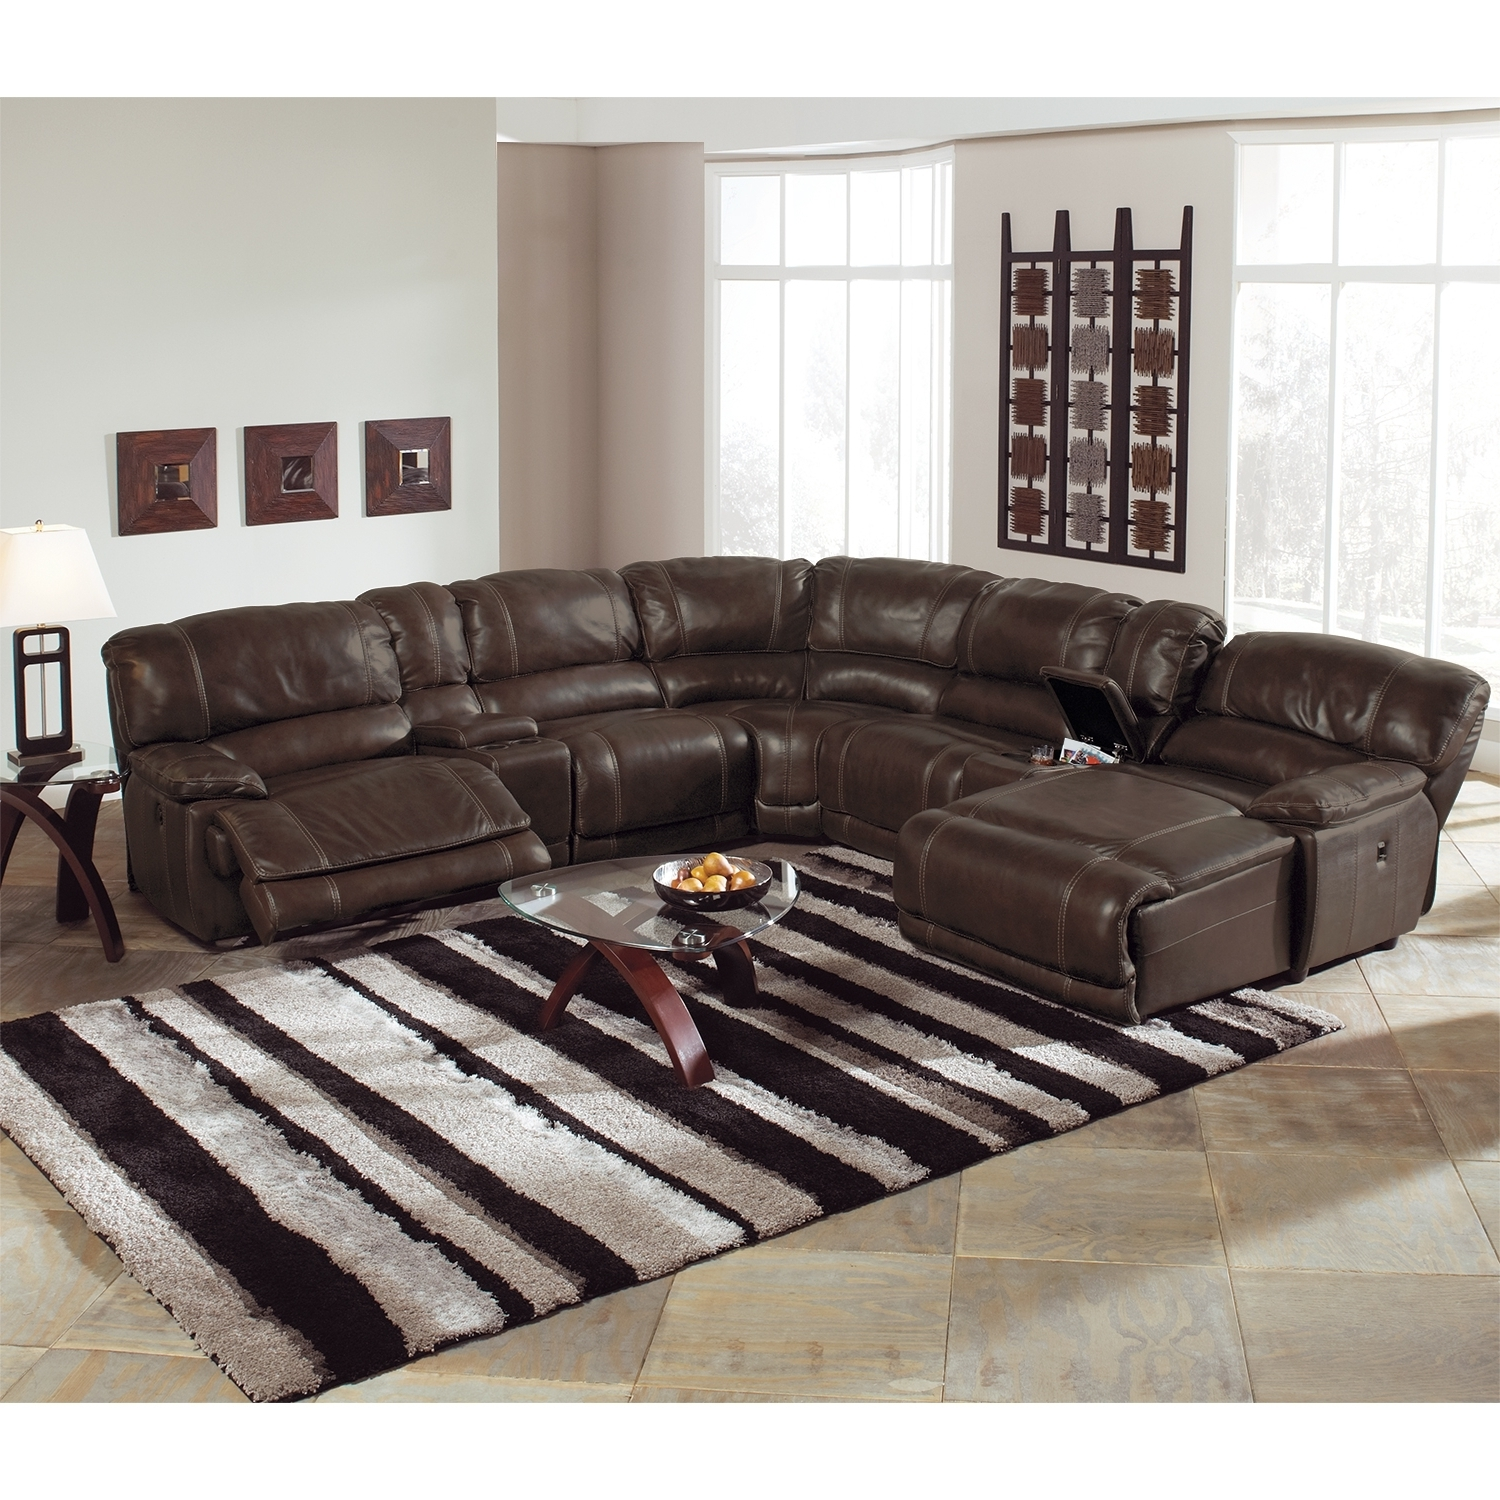 6 Piece Leather Sectional Sofas For Preferred St (View 5 of 20)